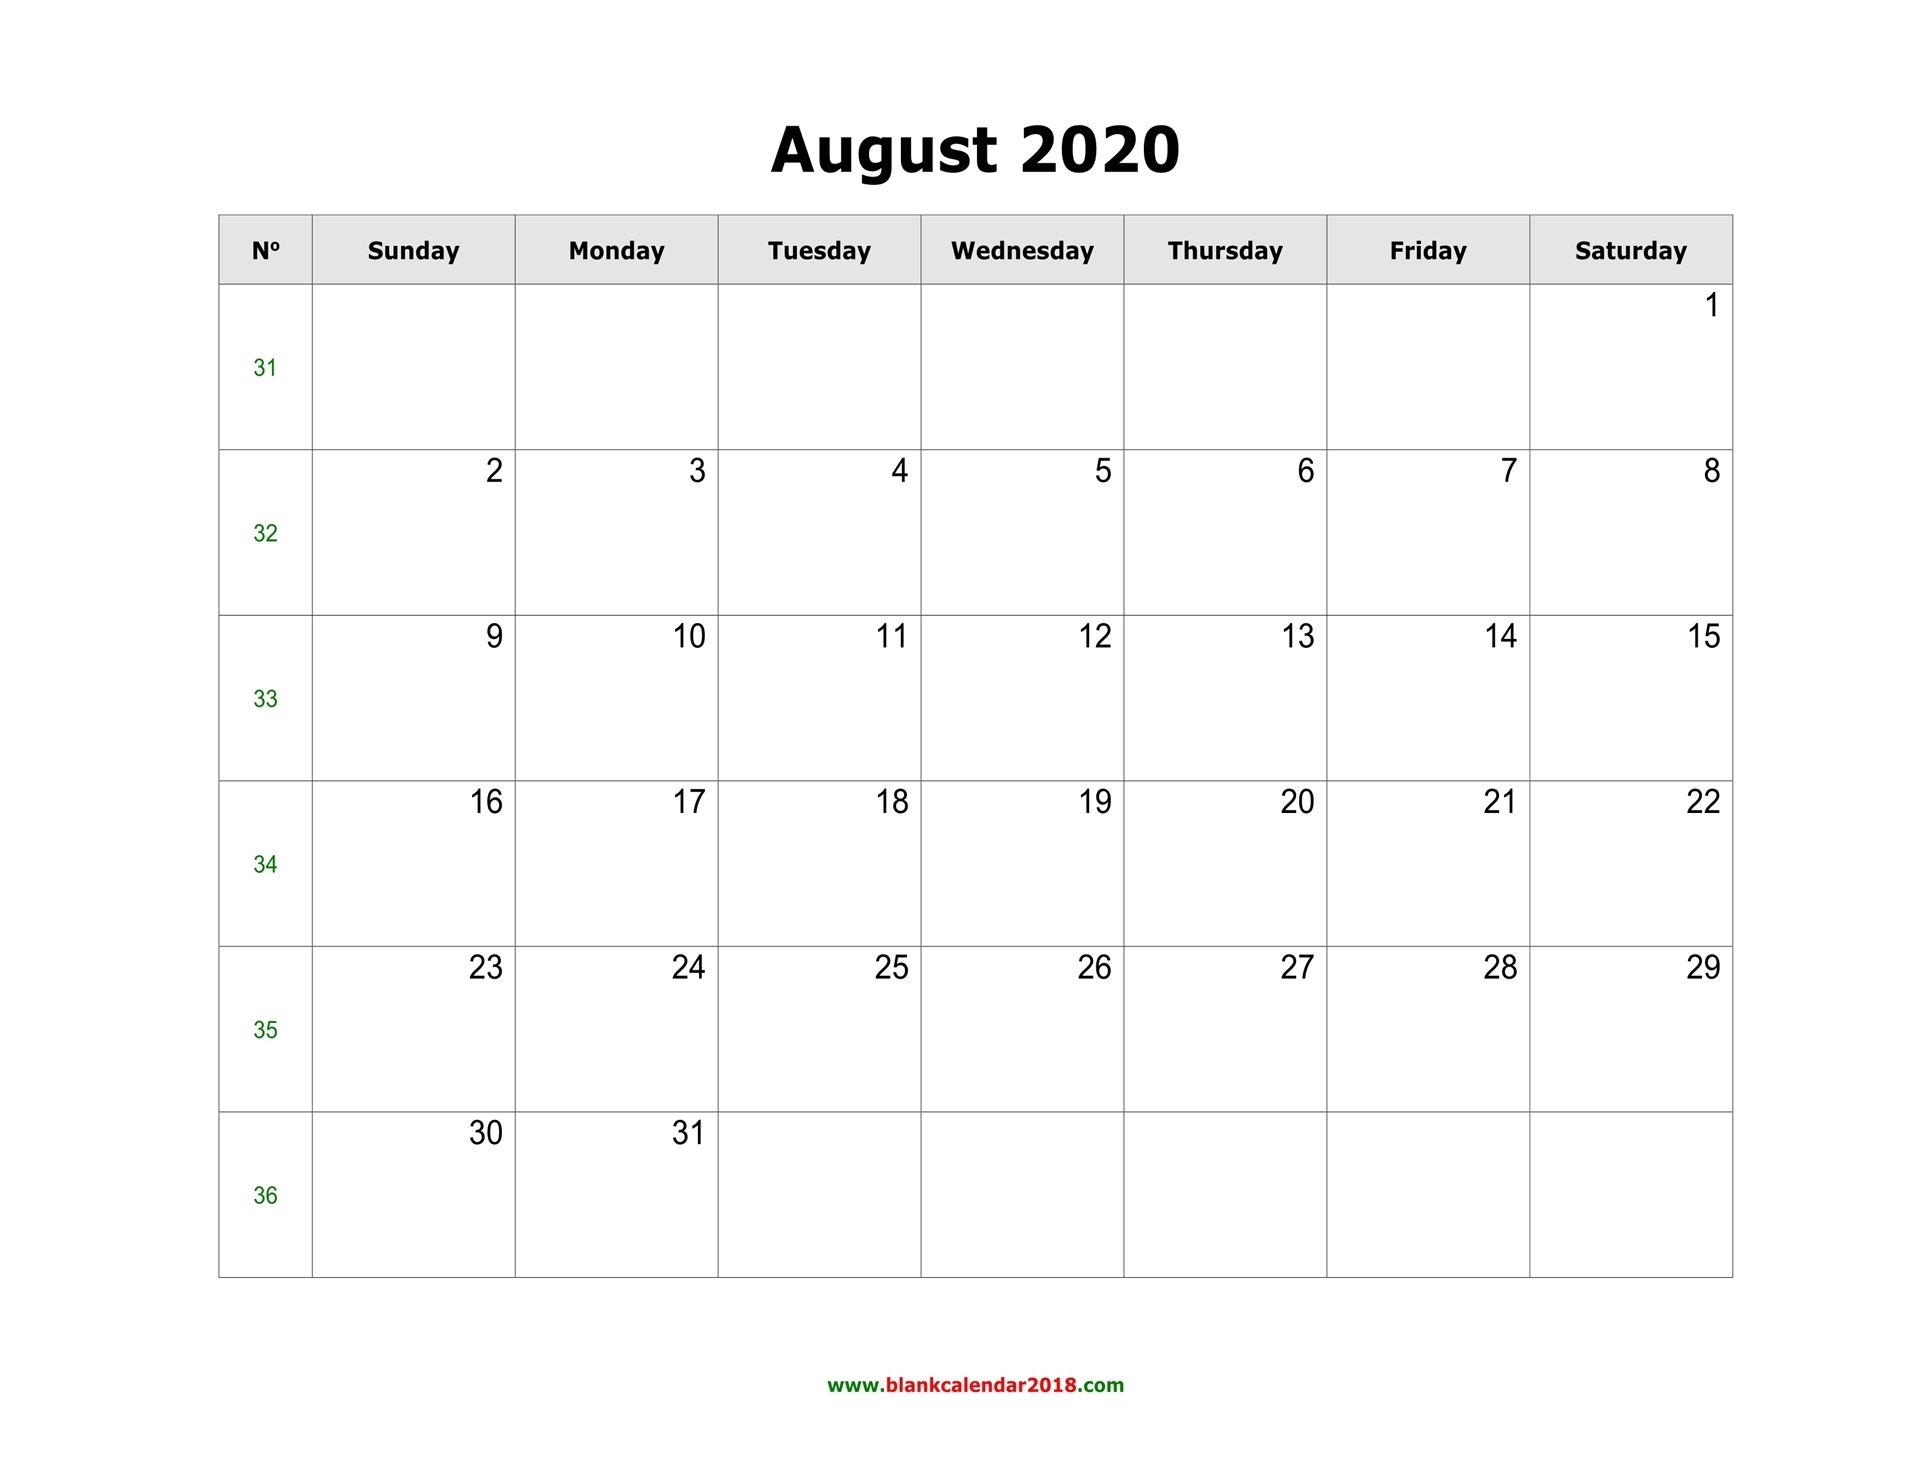 Pick Fill In August Schedule